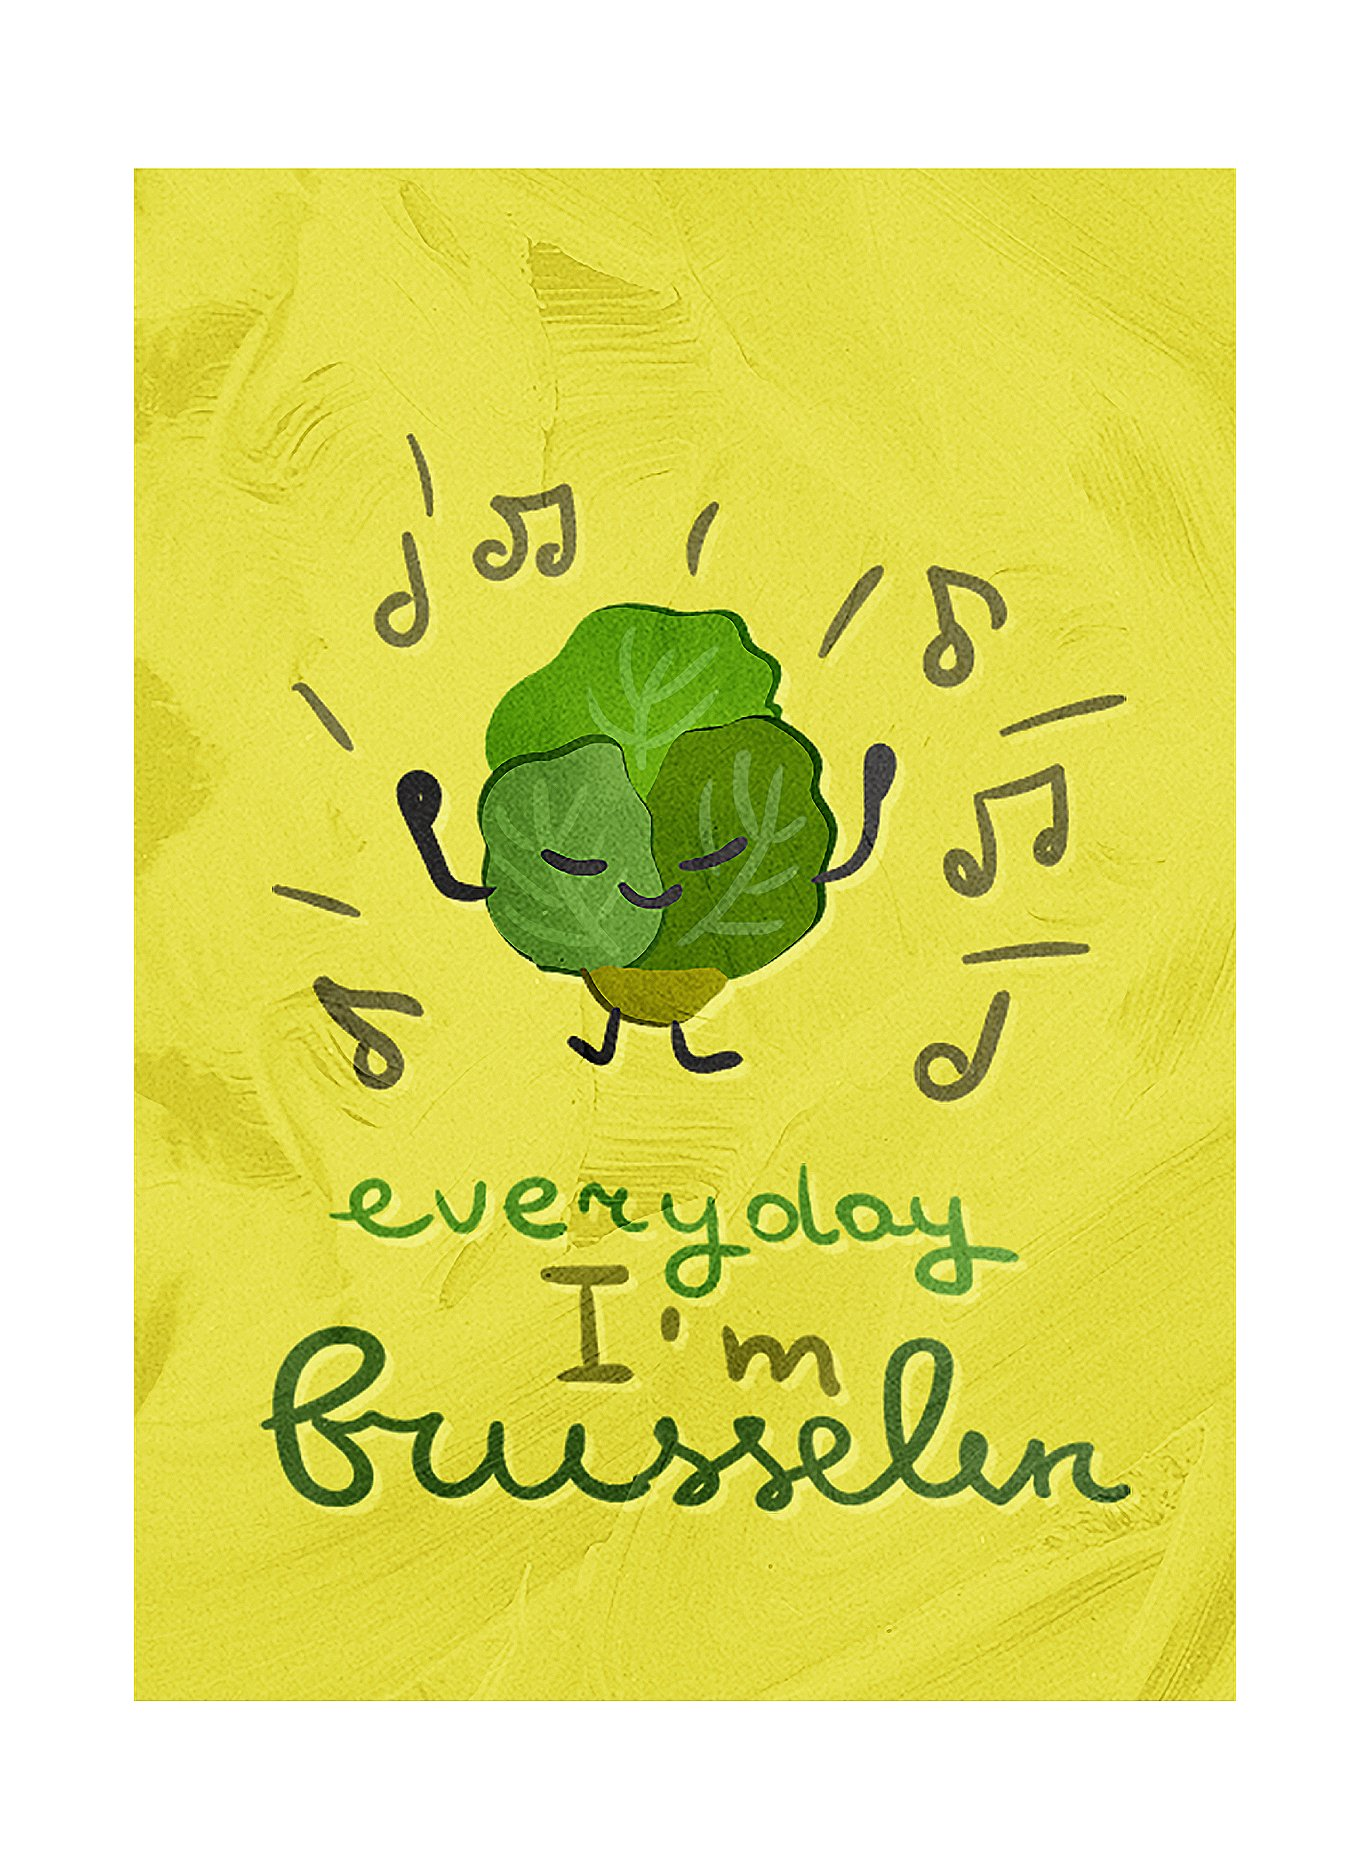 iCandy Combat Everyday I'm Brusselin Brussel Sprout Kitchen Pun Small 1 Pack of Sign, 7.5x10.5 Inch